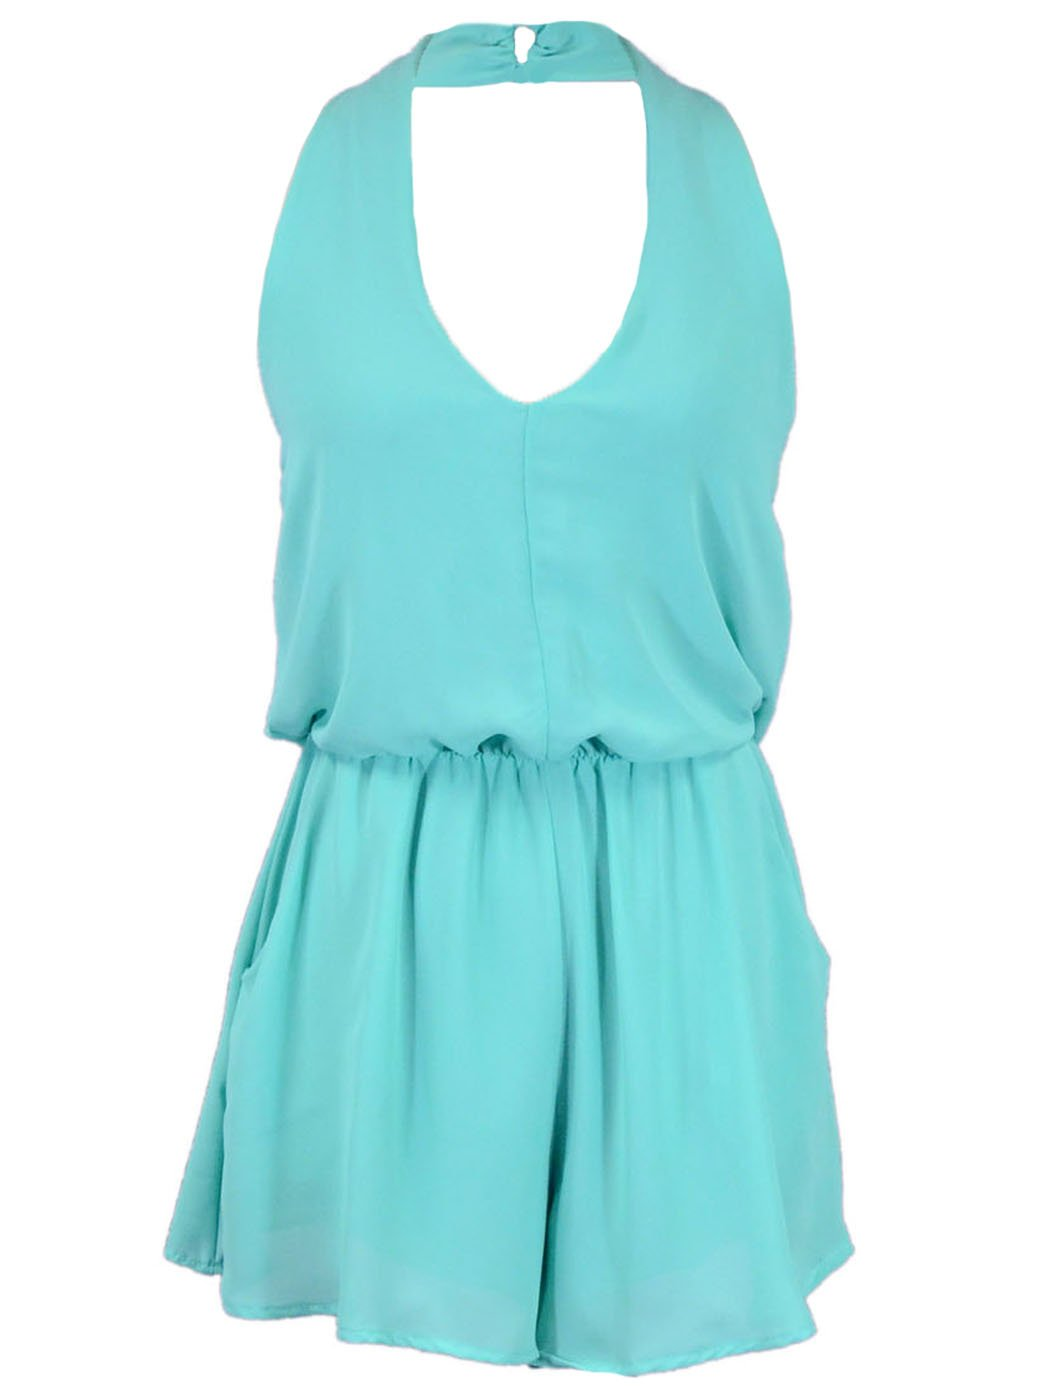 Lush Lightweight Simple Halter Chiffon Romper With Cinched Elastic Waistband